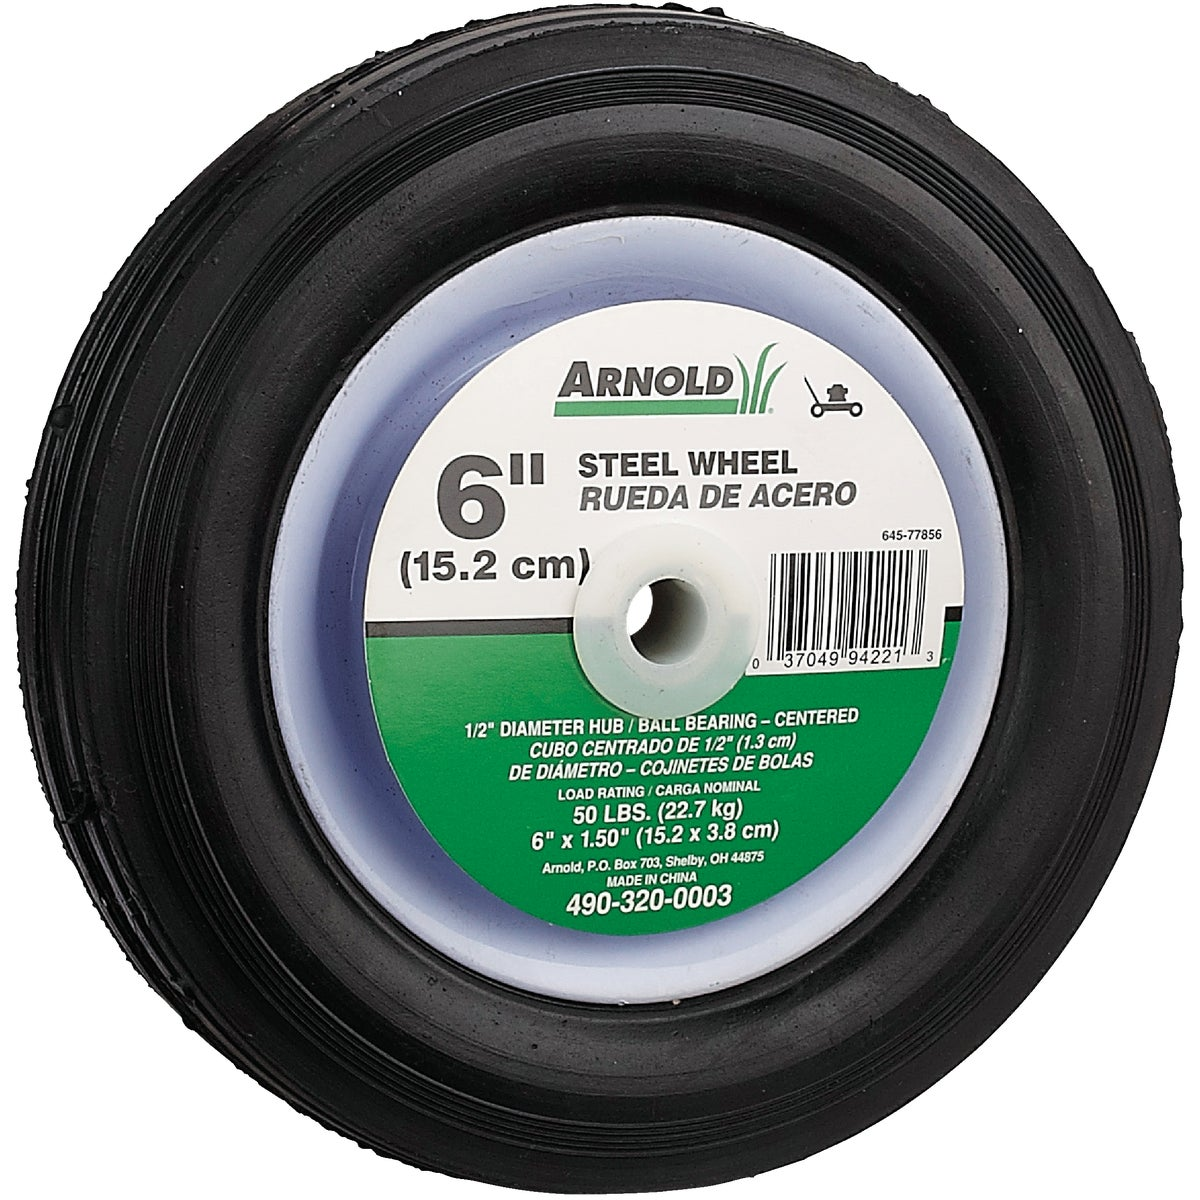 6X1.5 STEEL CNTR WHEEL - 490-320-0003 by Arnold Corp